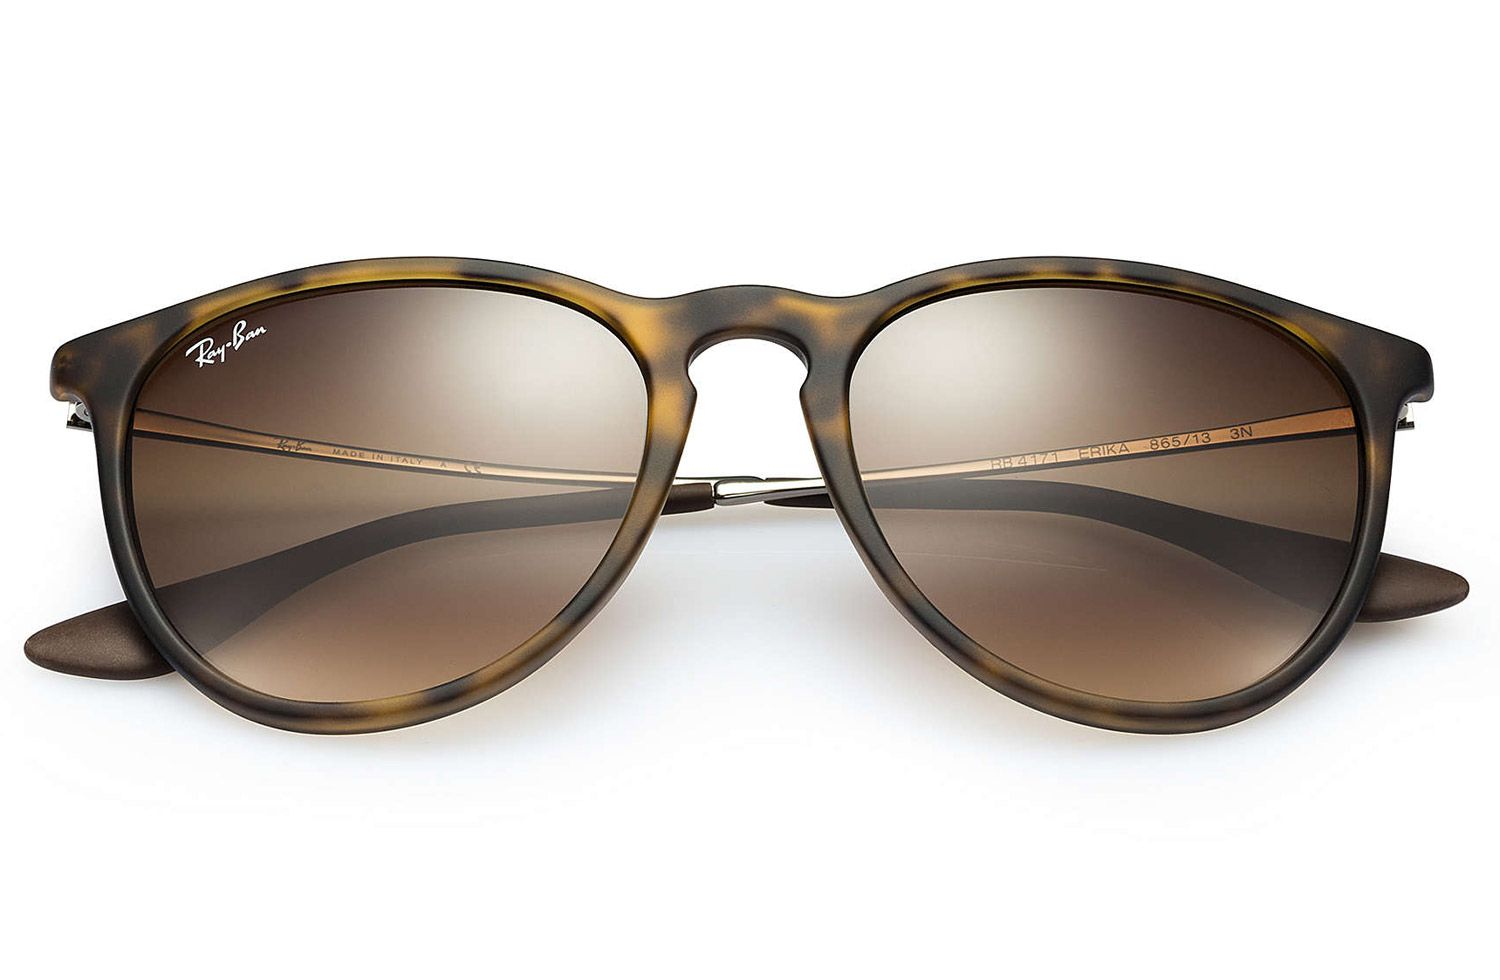 21758f2d39b8a Ray-Ban Erika Tortoise Brown Sunglasses - RB4171 865 13 54